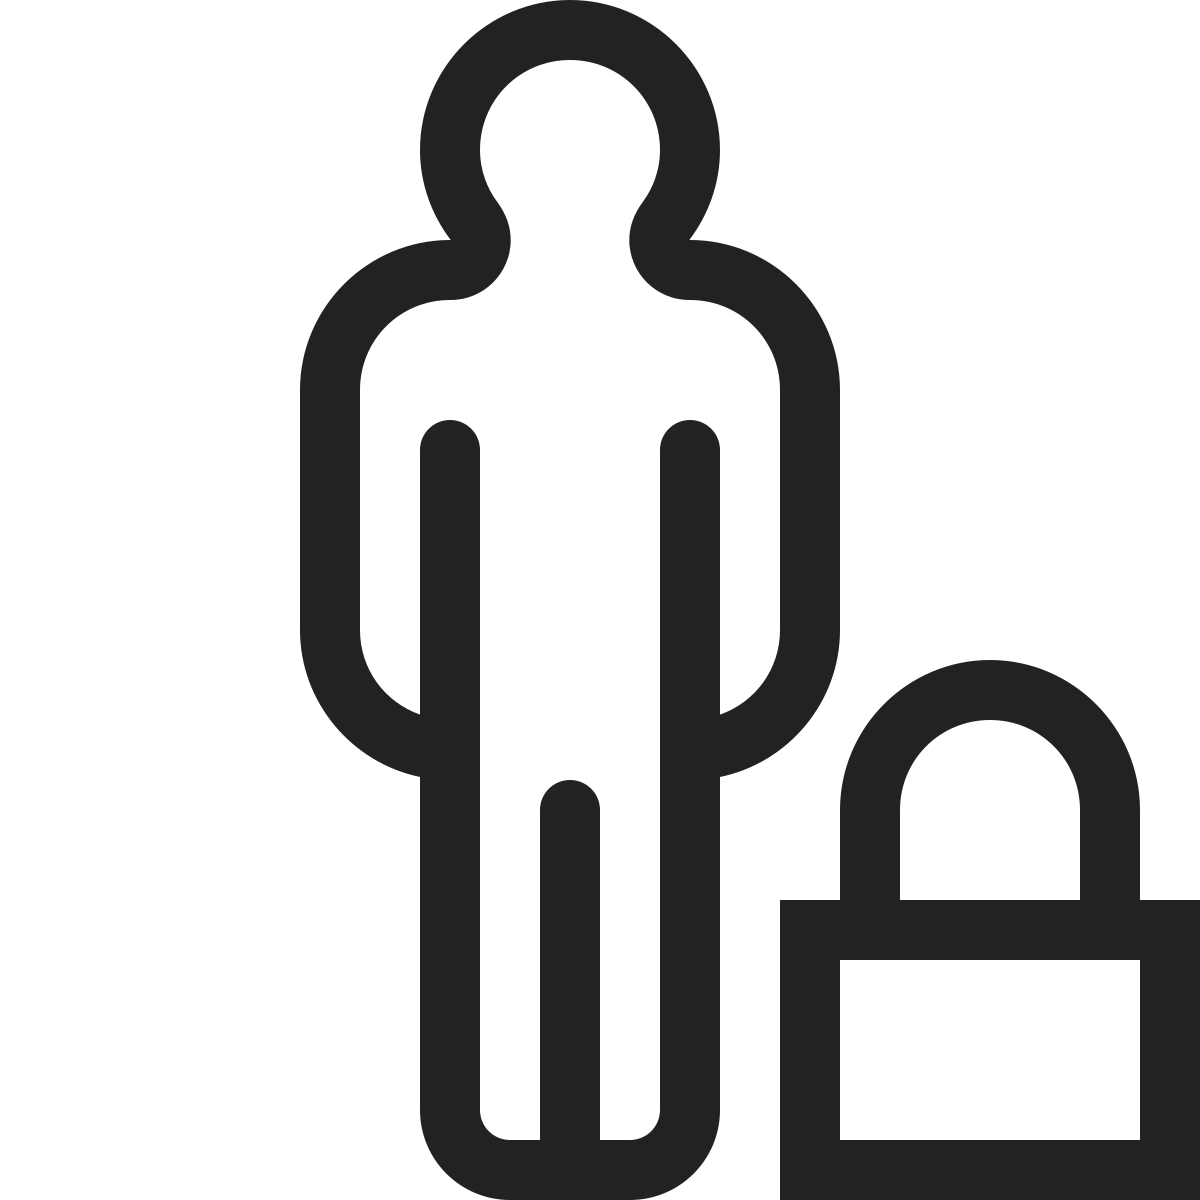 people  group  user  profile  lock  person icon icon